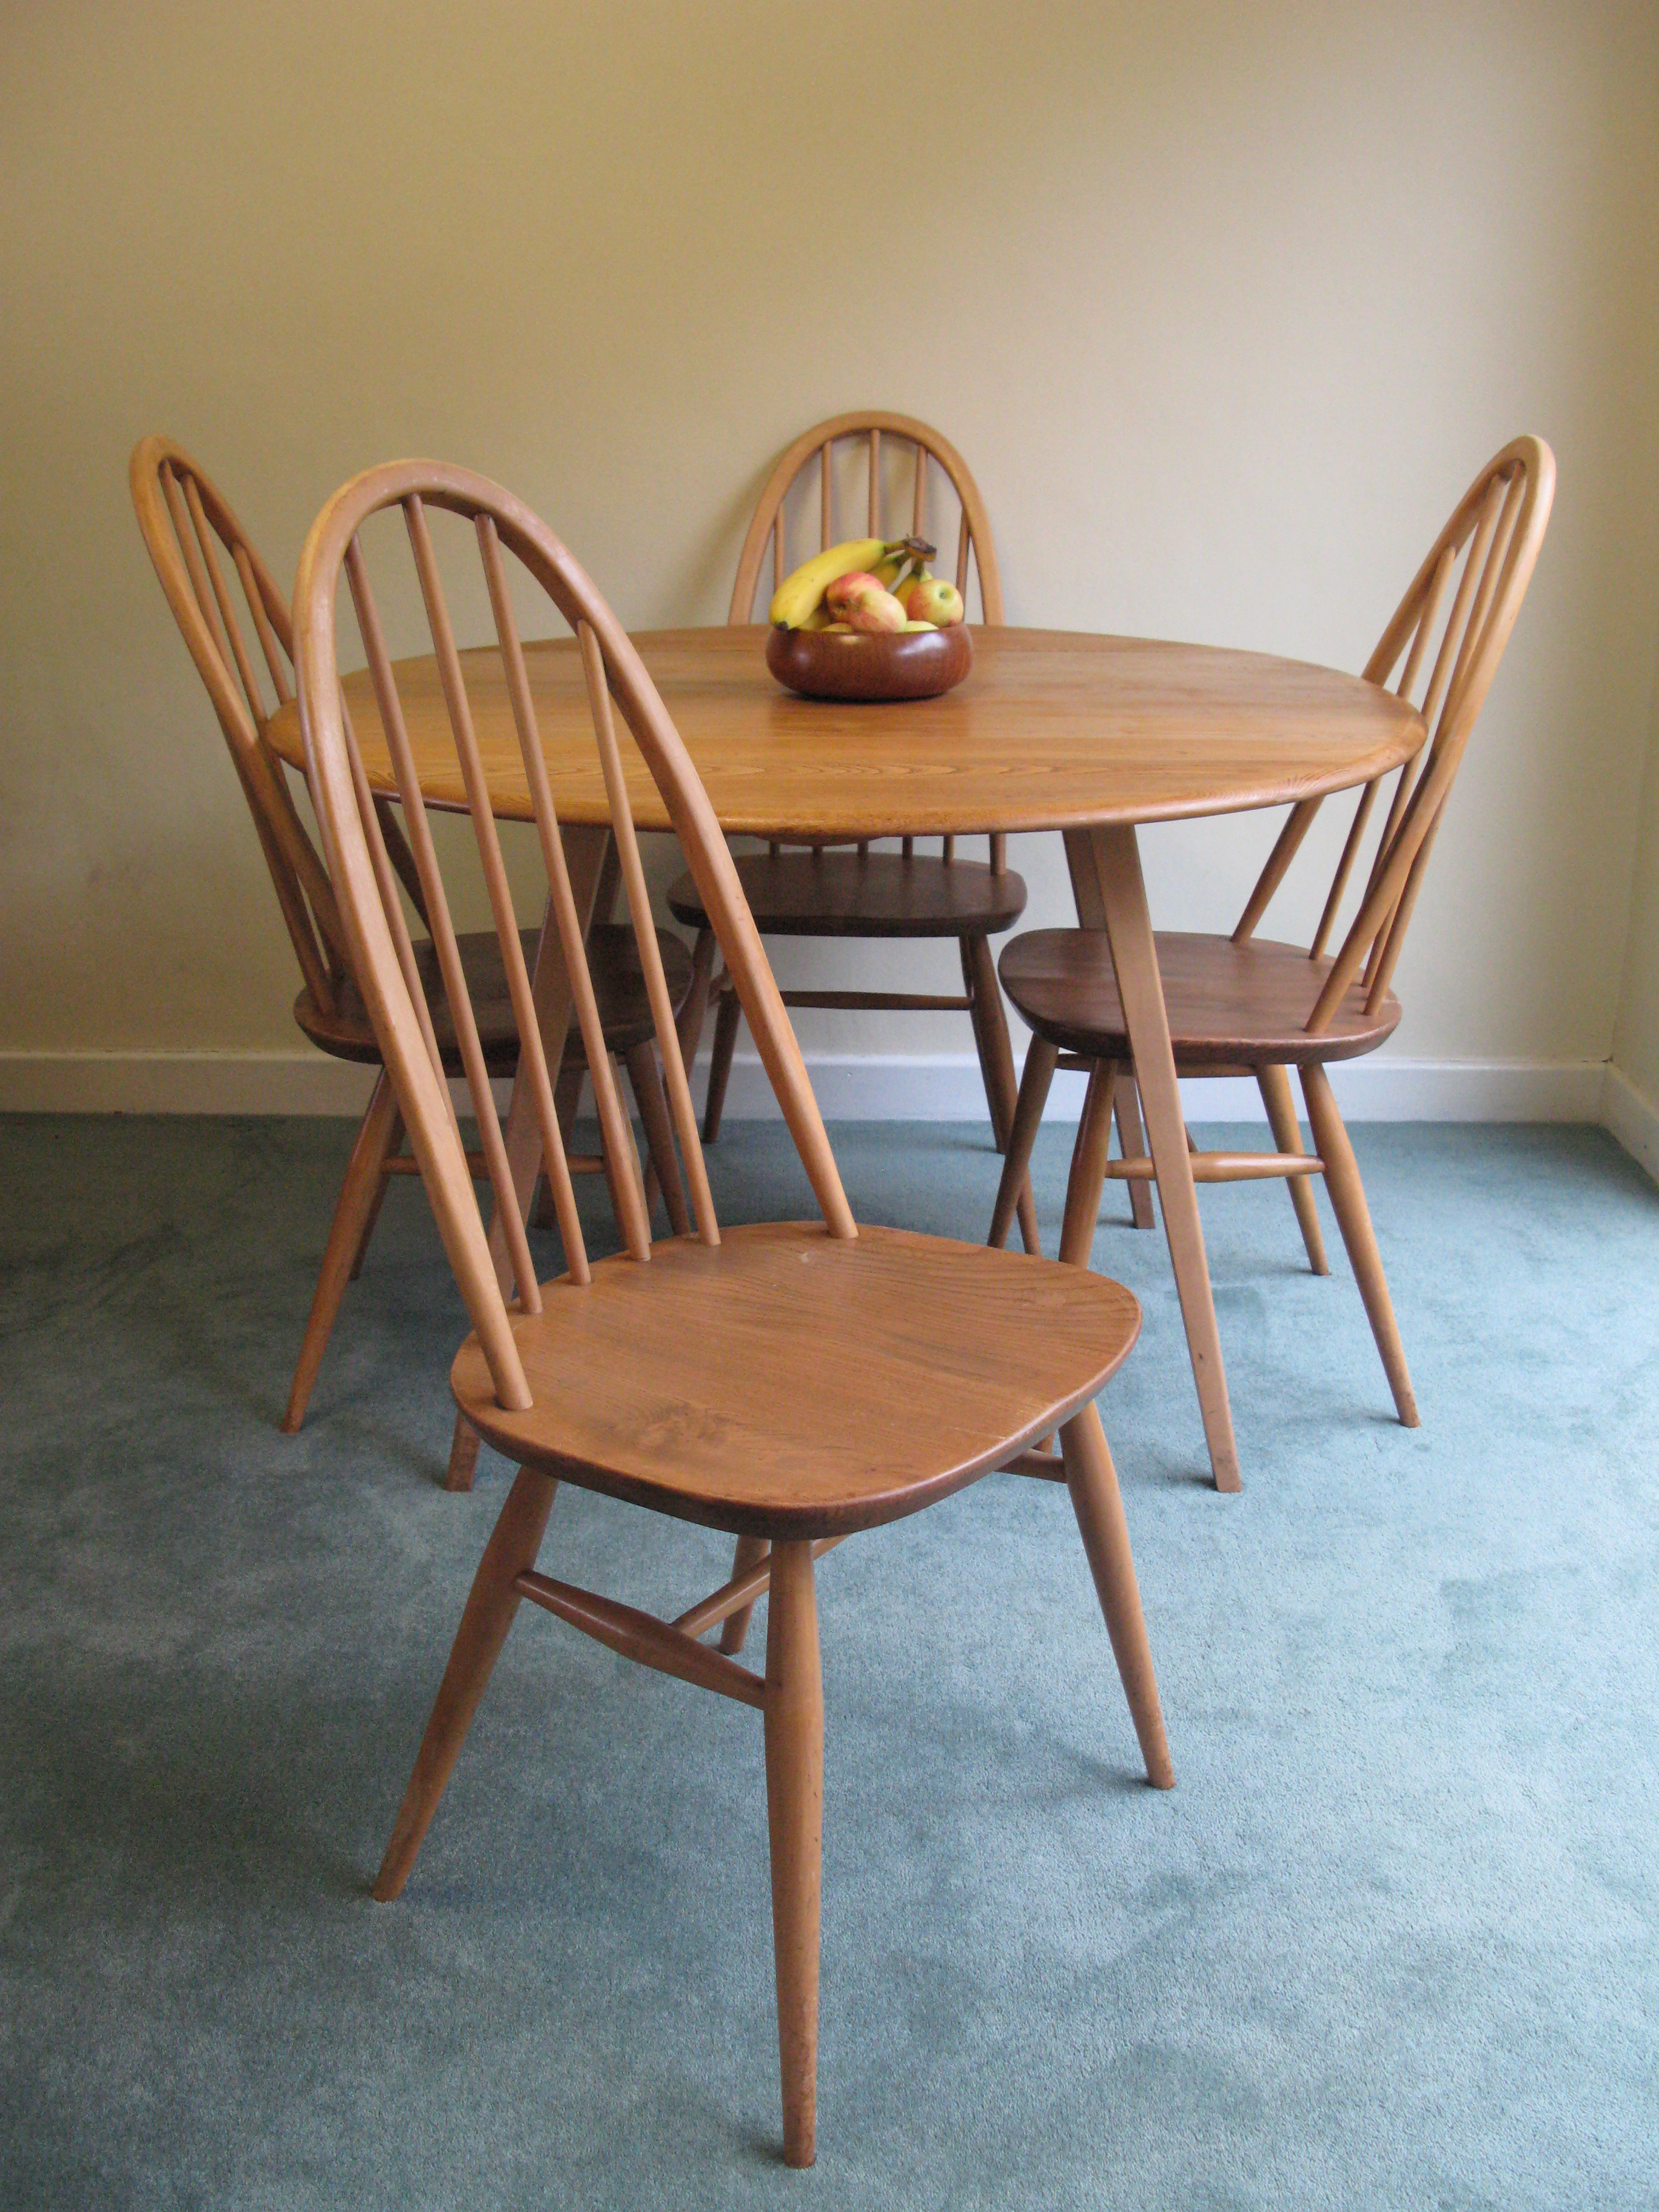 Kofod larsen dining chair - Dining Furniture High Wycombe Room Ornament